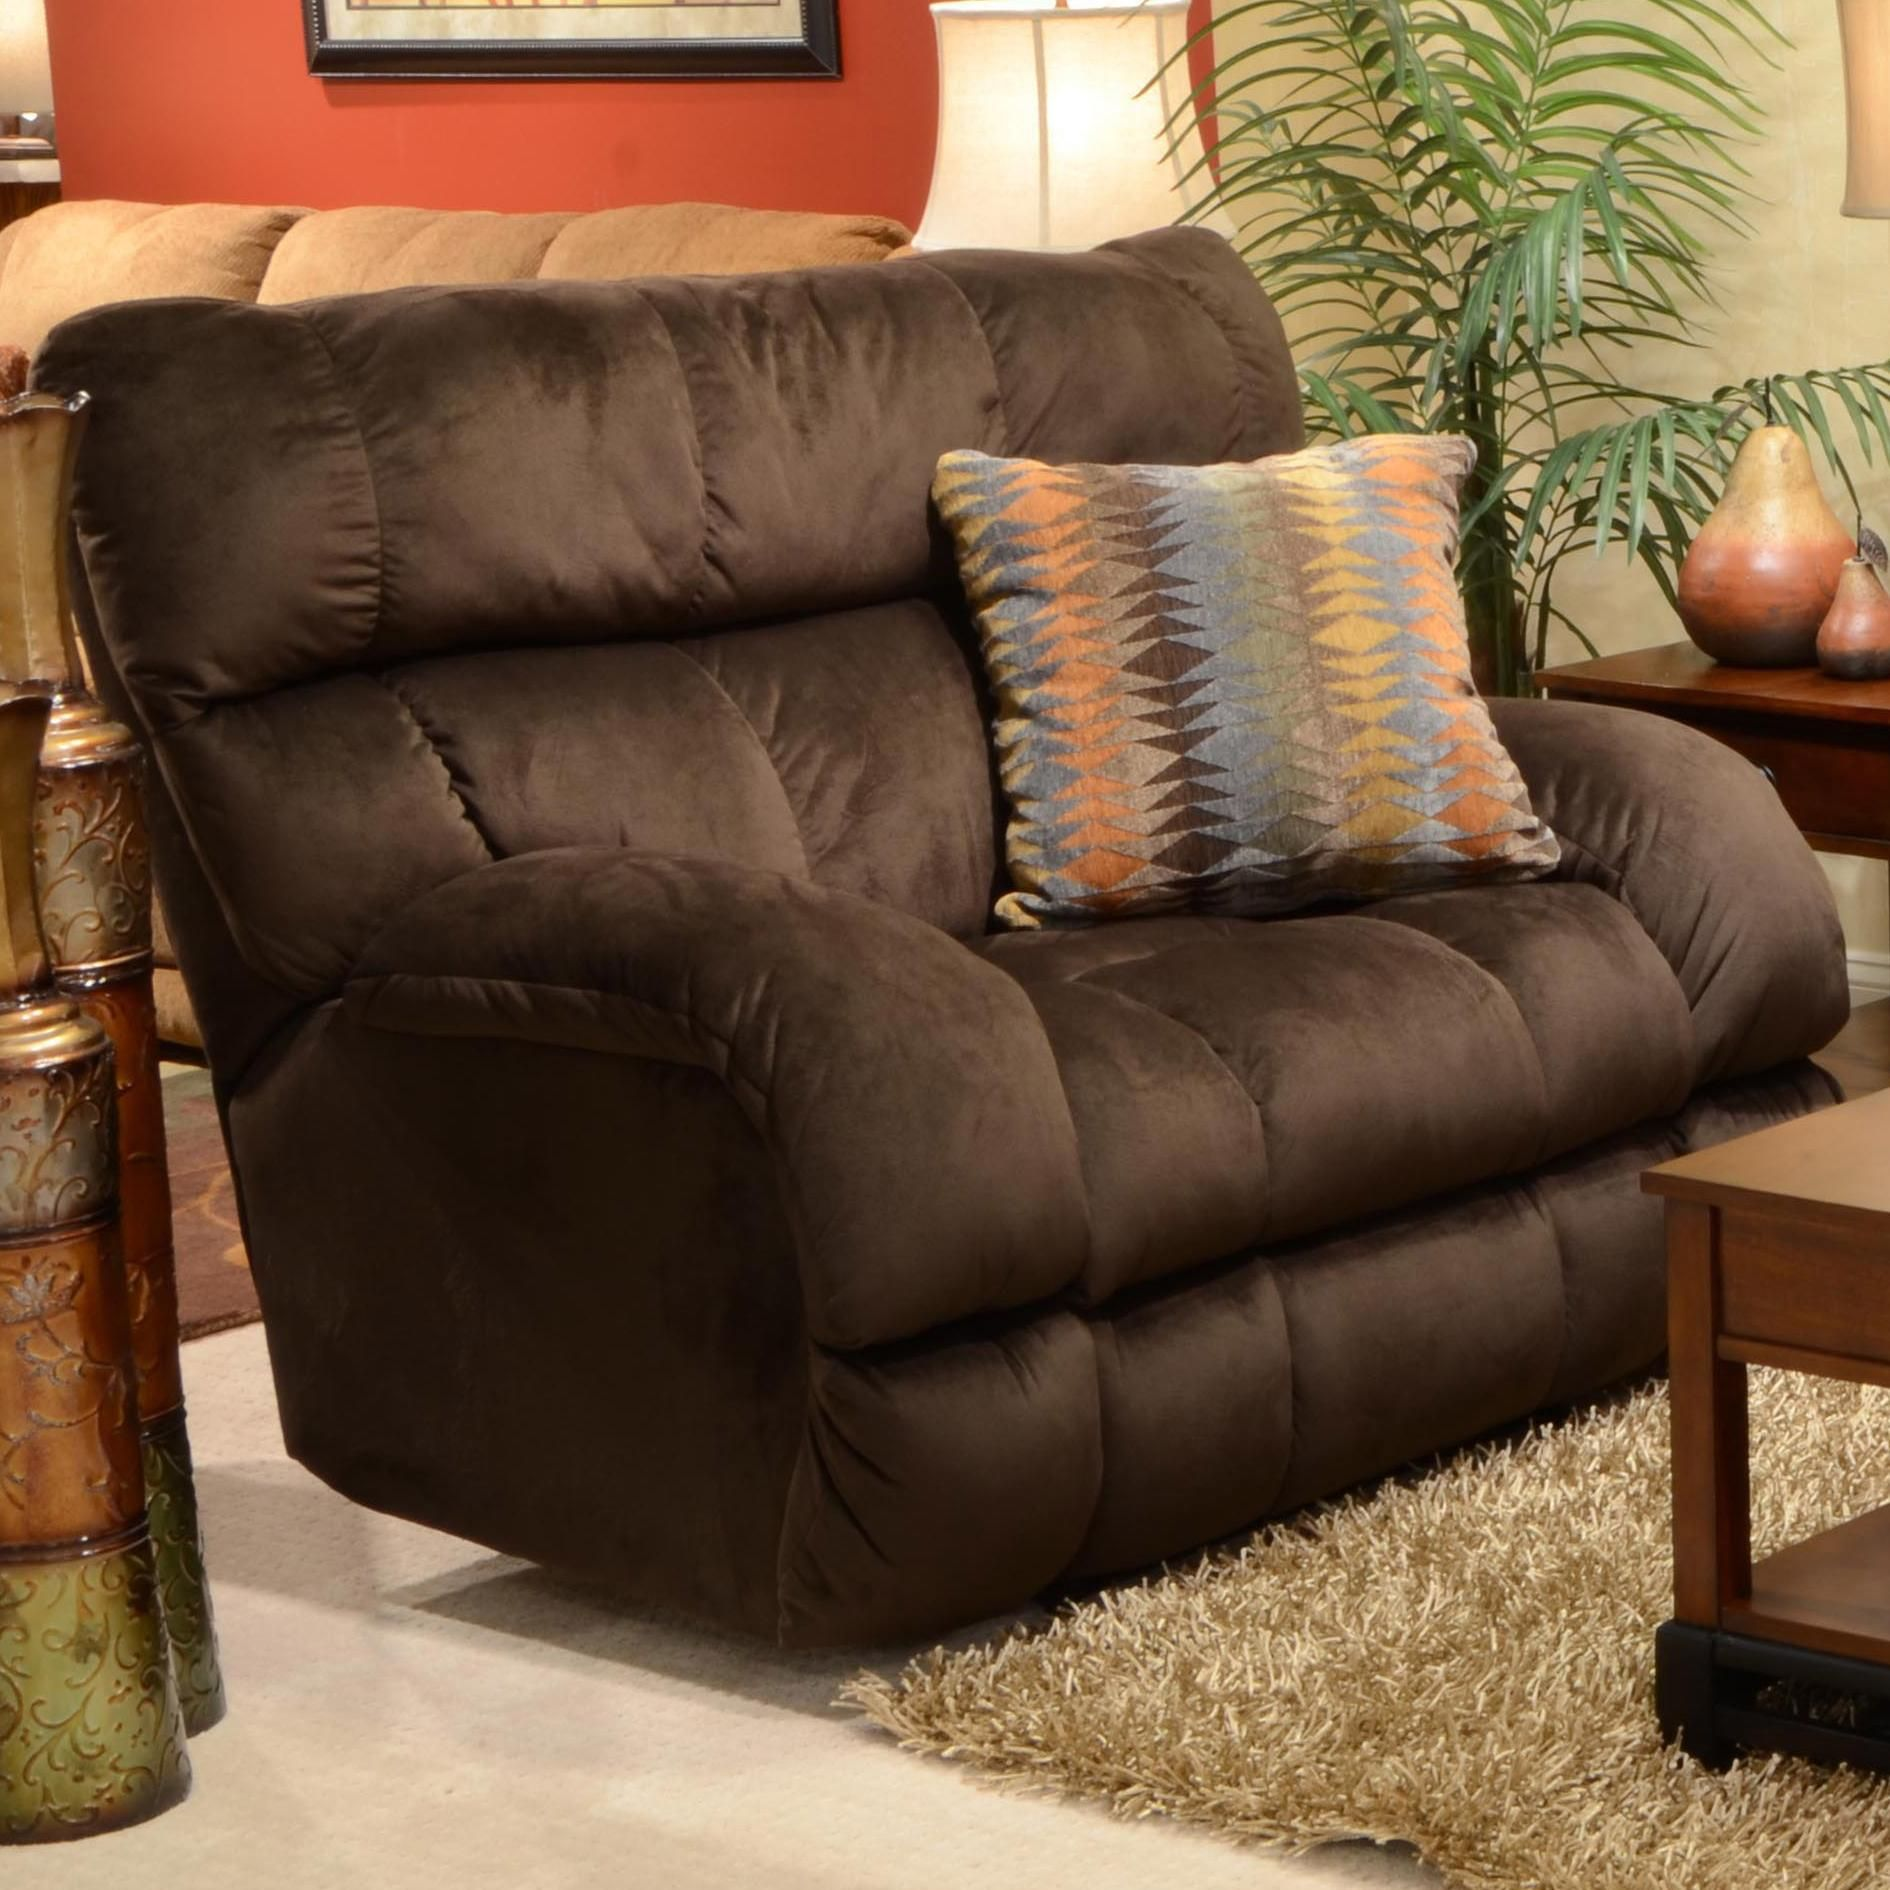 Double Wide Recliner Chair Best Double Wide Recliner Chair D43 In Wonderful Home Design Ideas